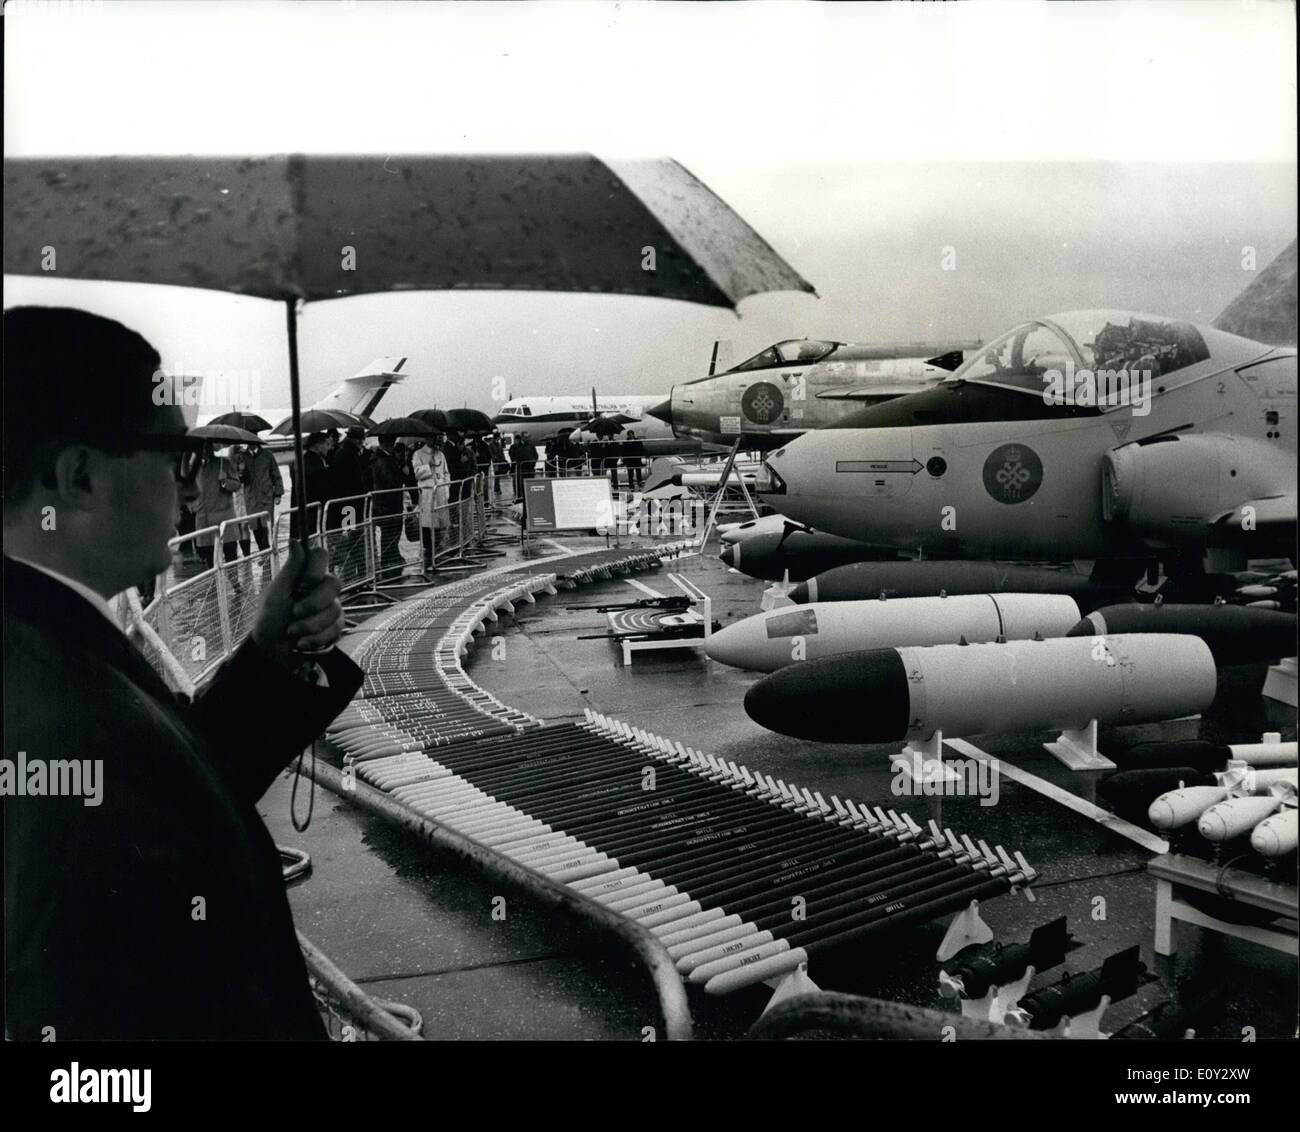 Sep. 09, 1968 - Flying Display For V.I..'s Farnborough: Today was V.I.P.'s day at the Farnborough Air Show were Stock Photo